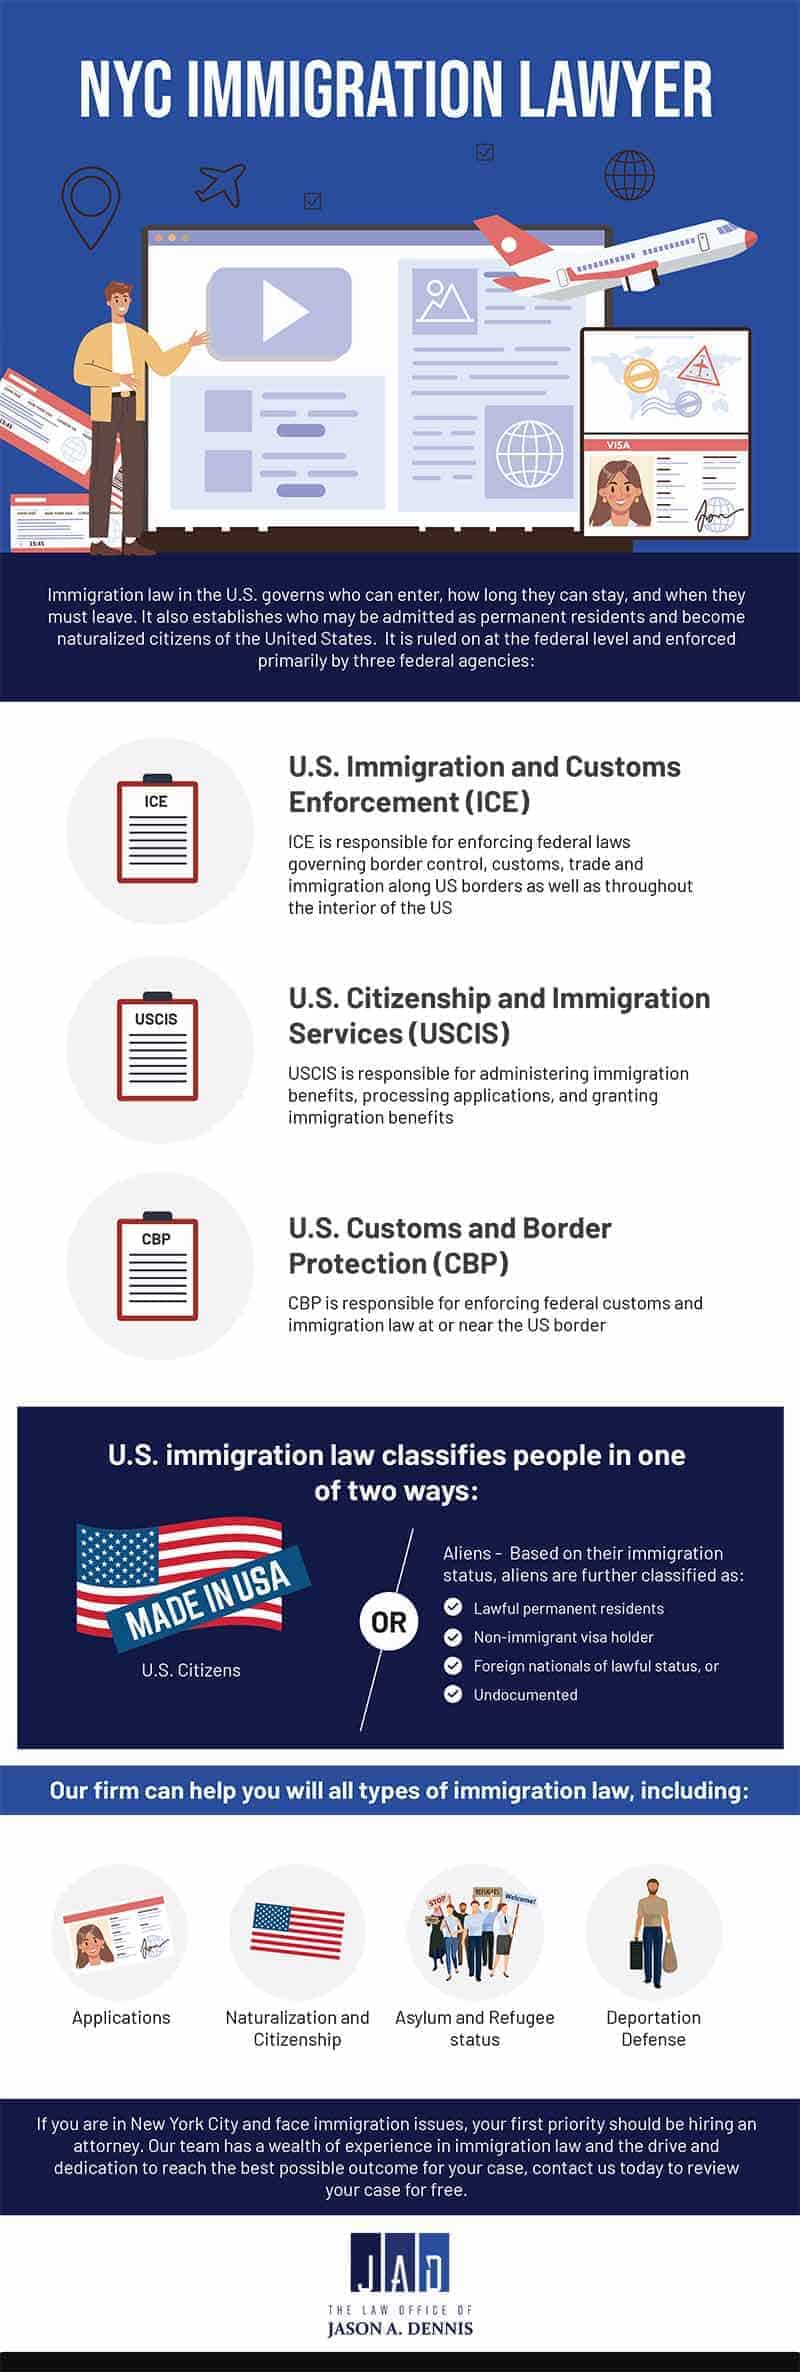 NYC Immigration Lawyer - Infographic